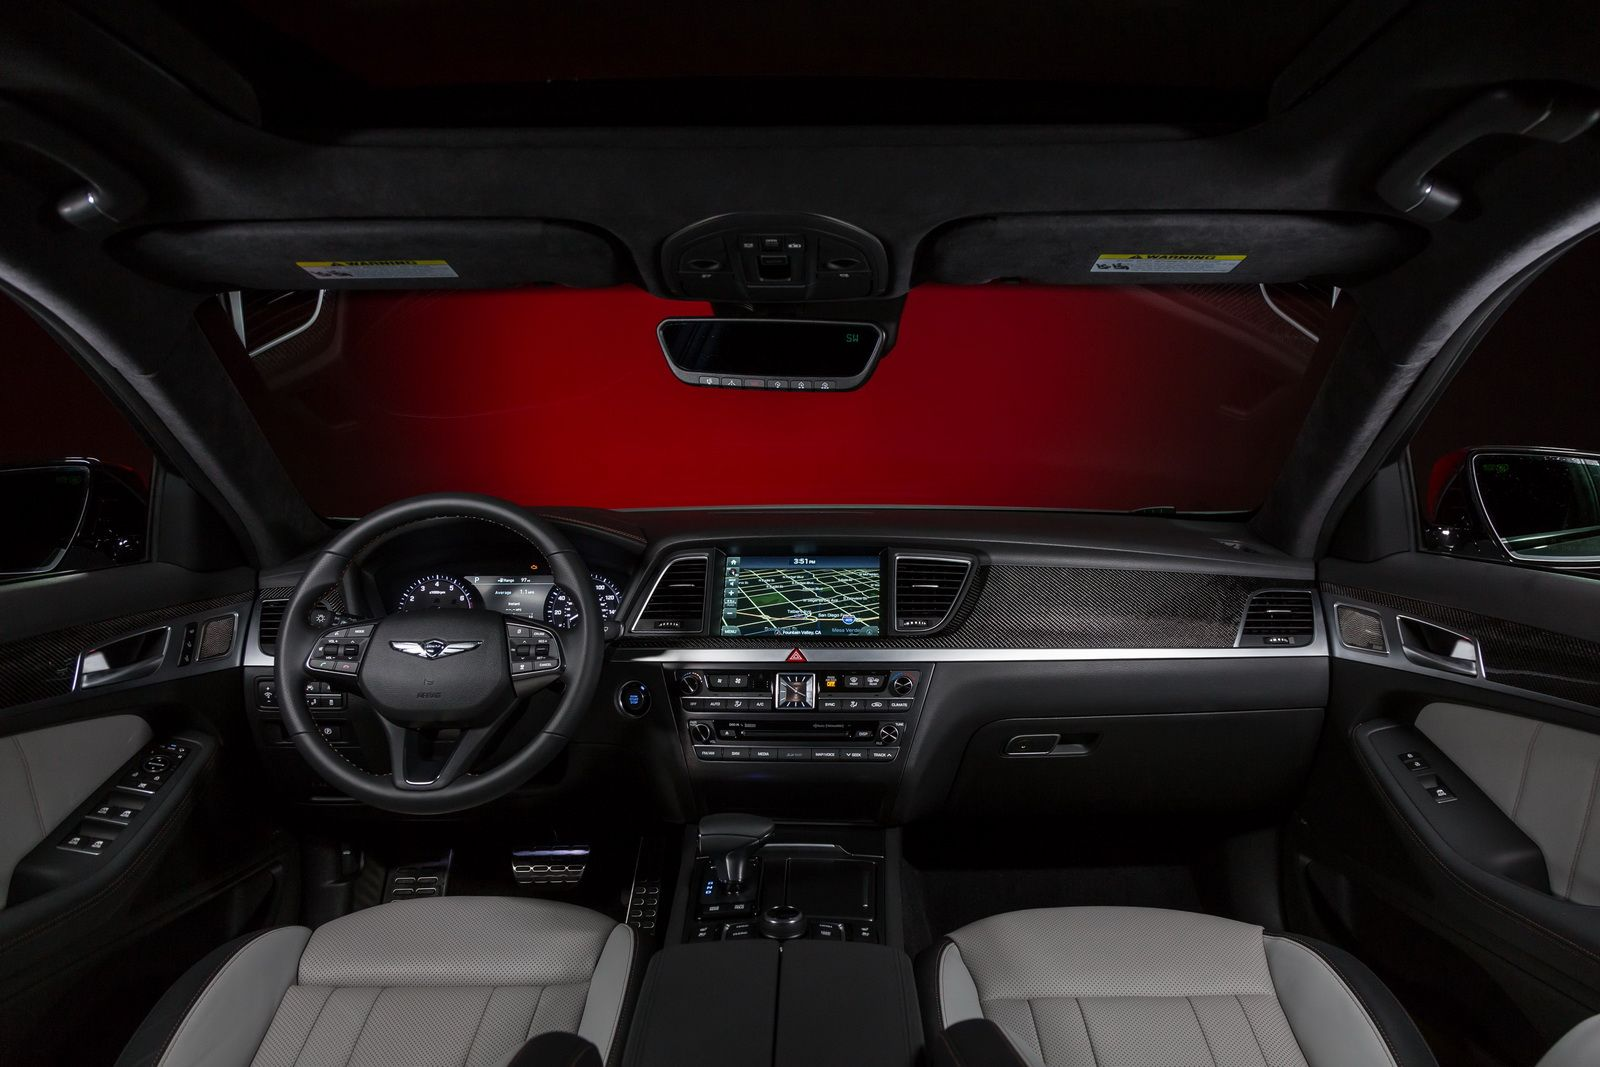 2018 genesis g80 interior future cars pictures pinterest car pictures sedans and toyota